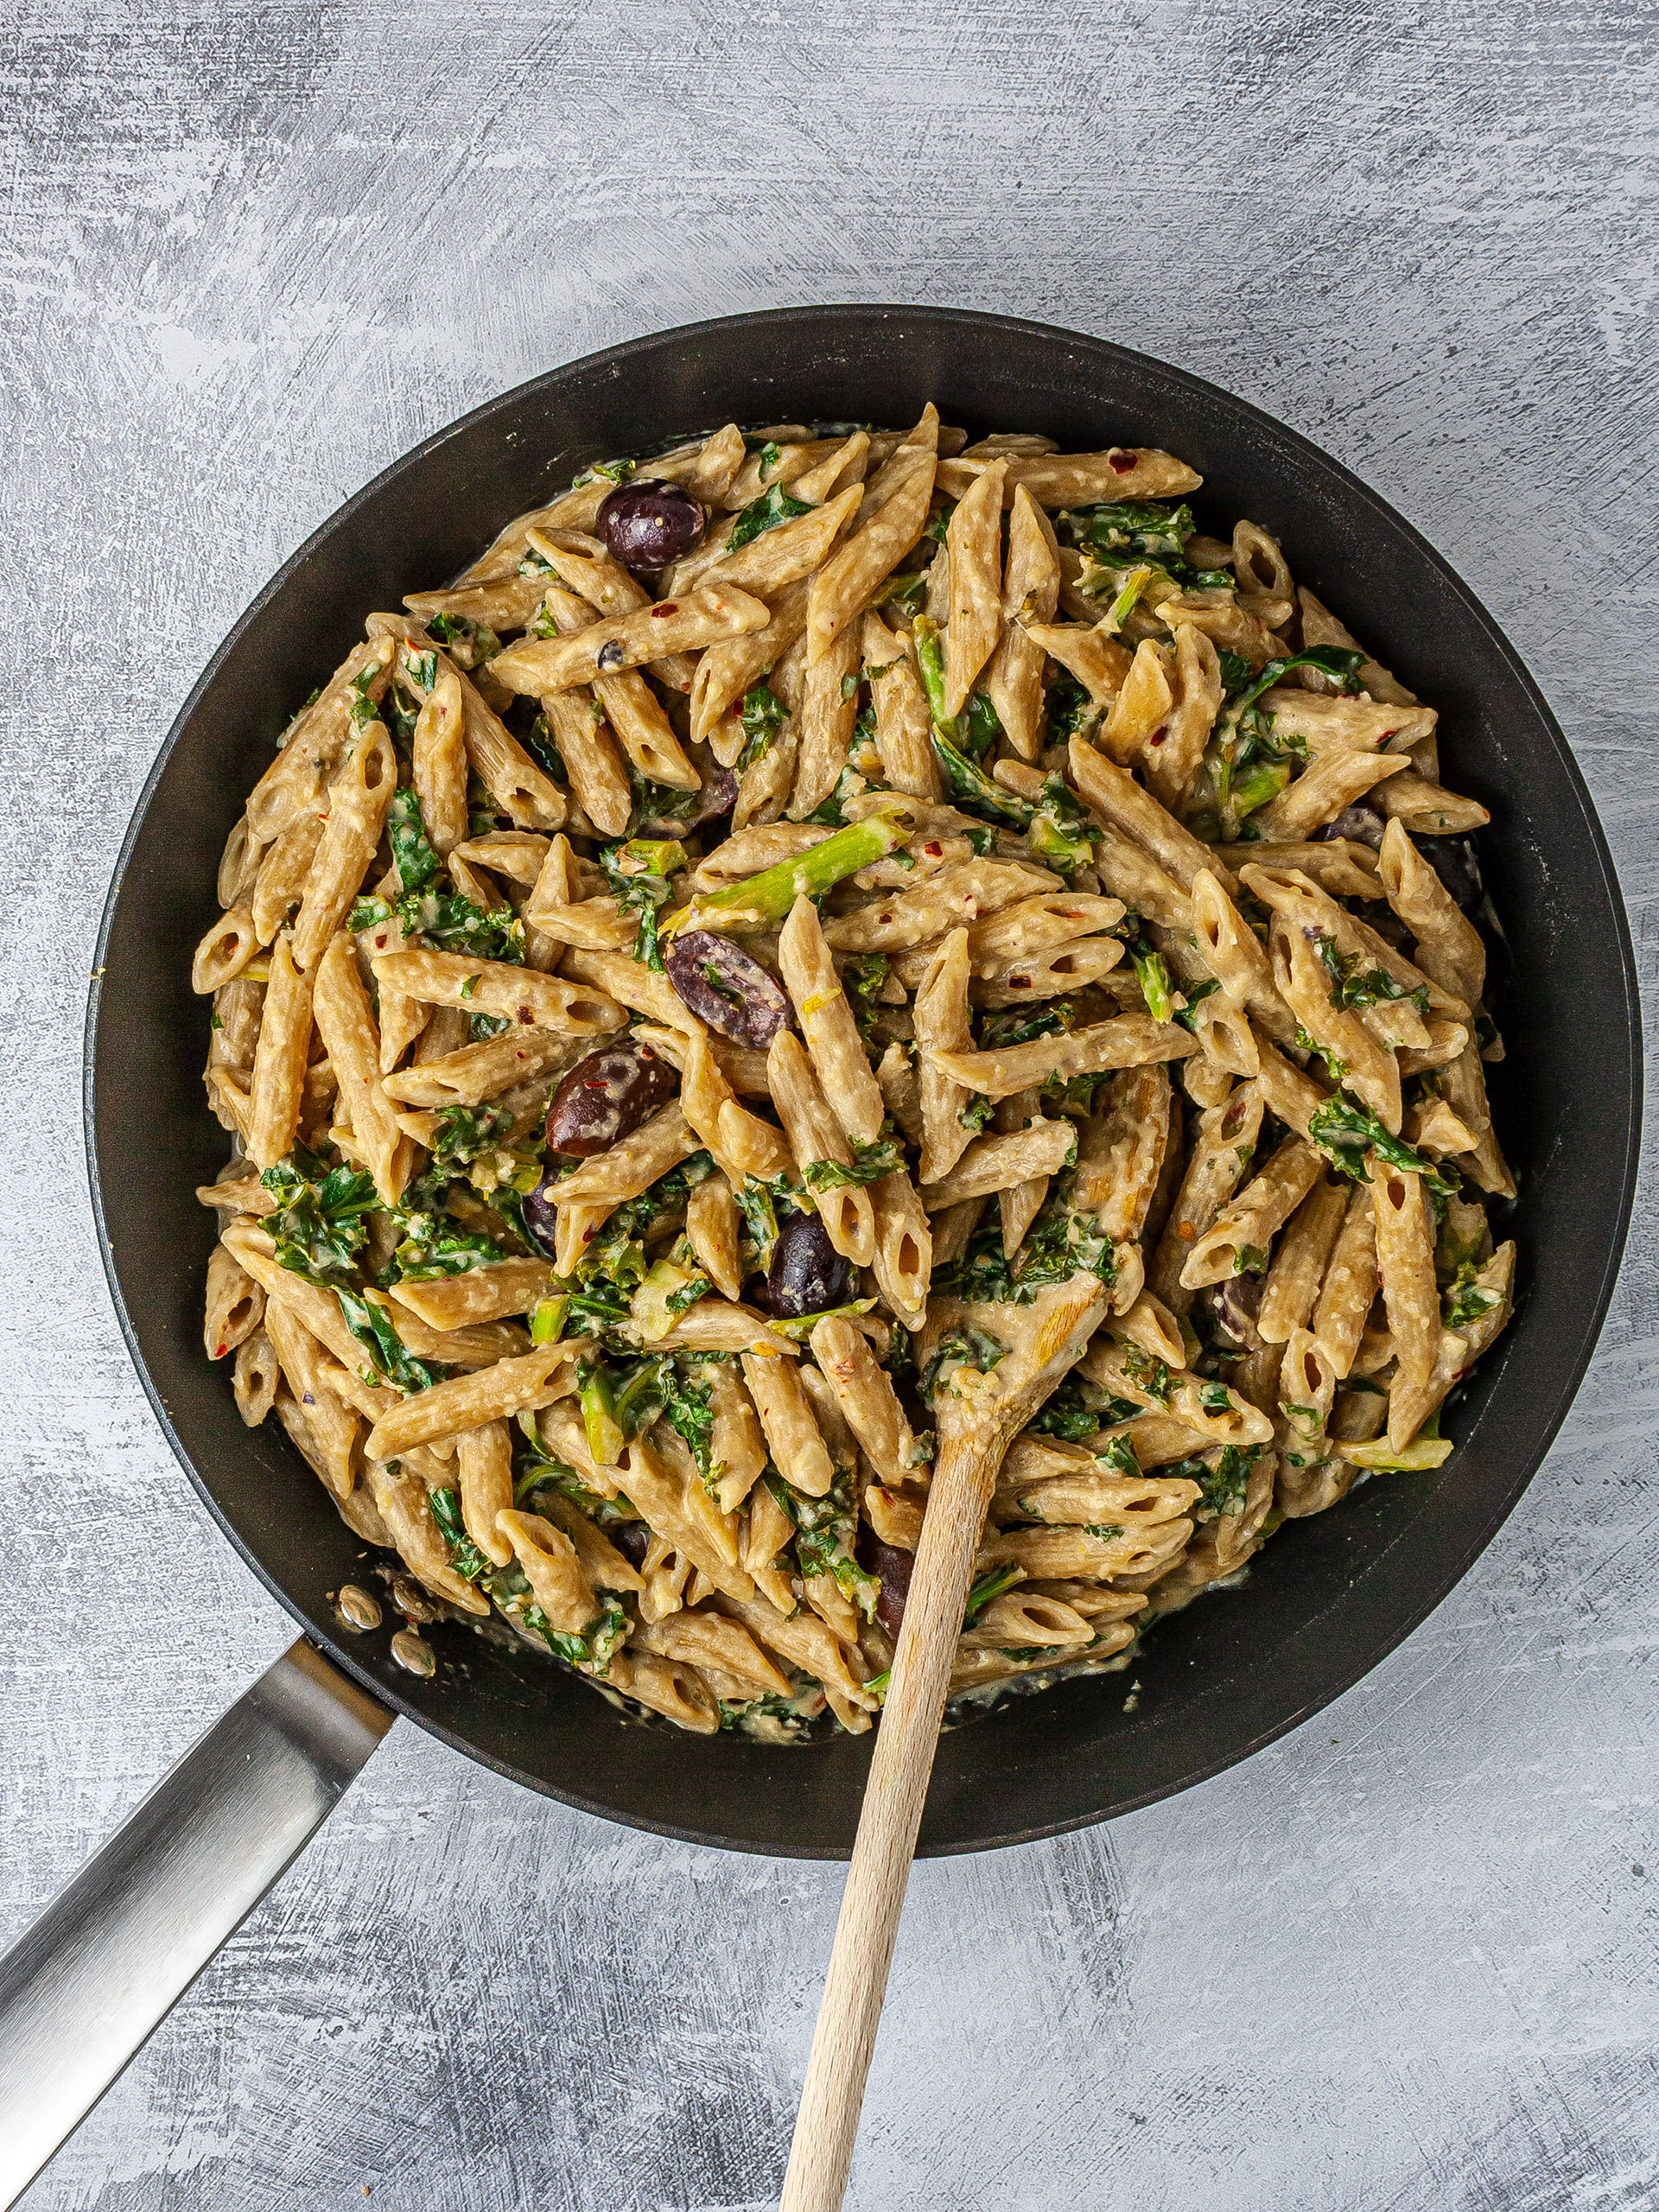 Wholemeal pasta with hummus sauce in a pan.